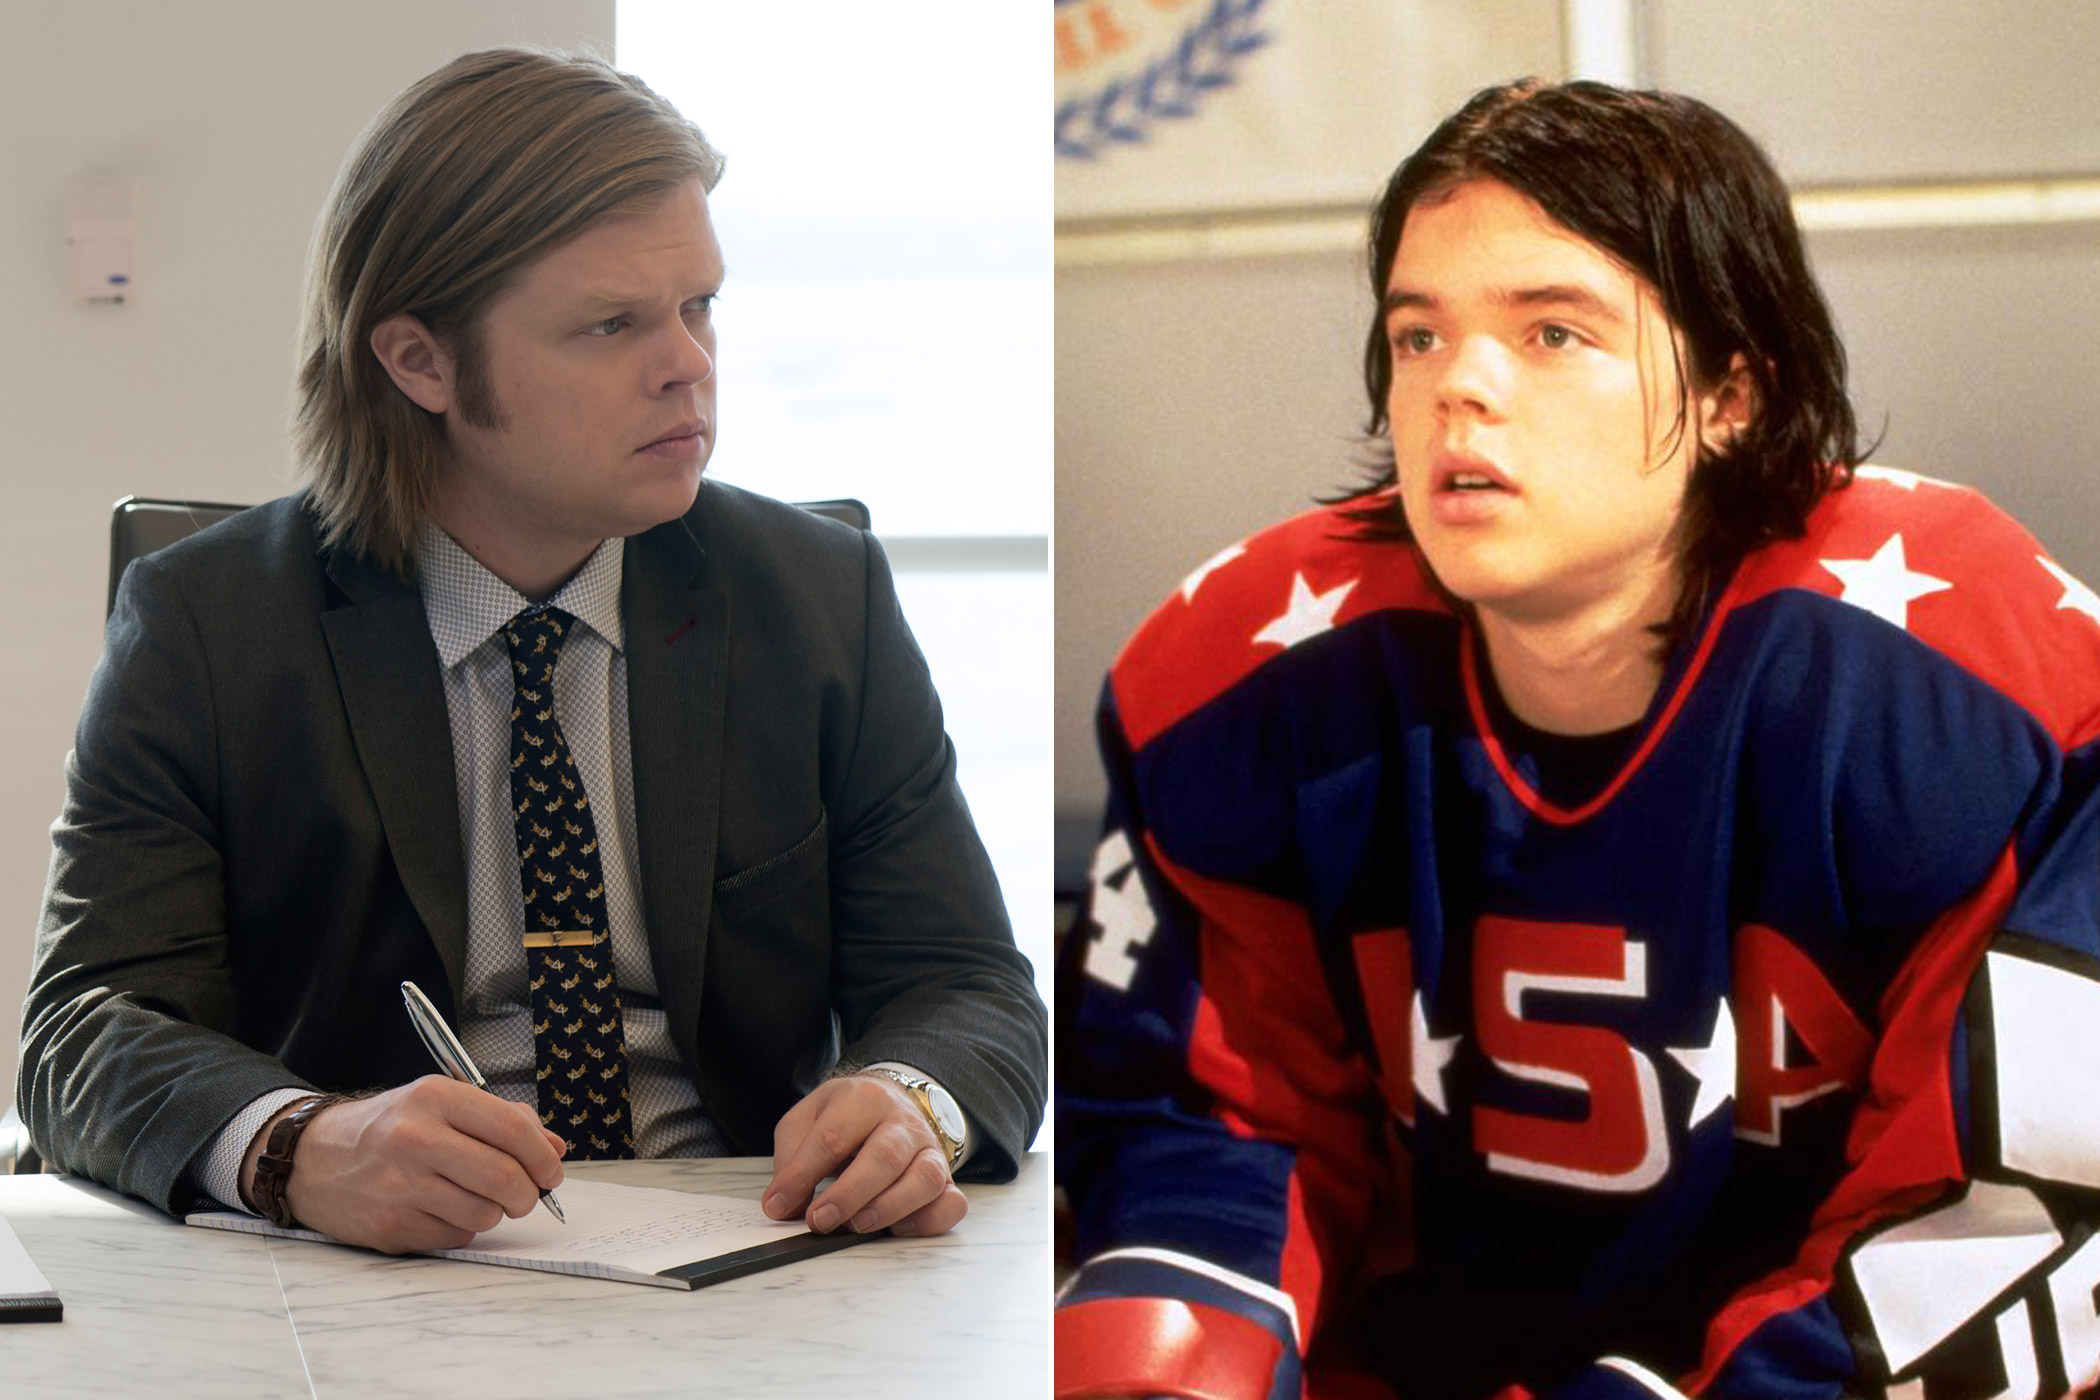 Elden Henson as Foggy Bottom in <i>Daredevil</i> and Fulton Reed in the </i>Mighty Ducks</i> trilogy.